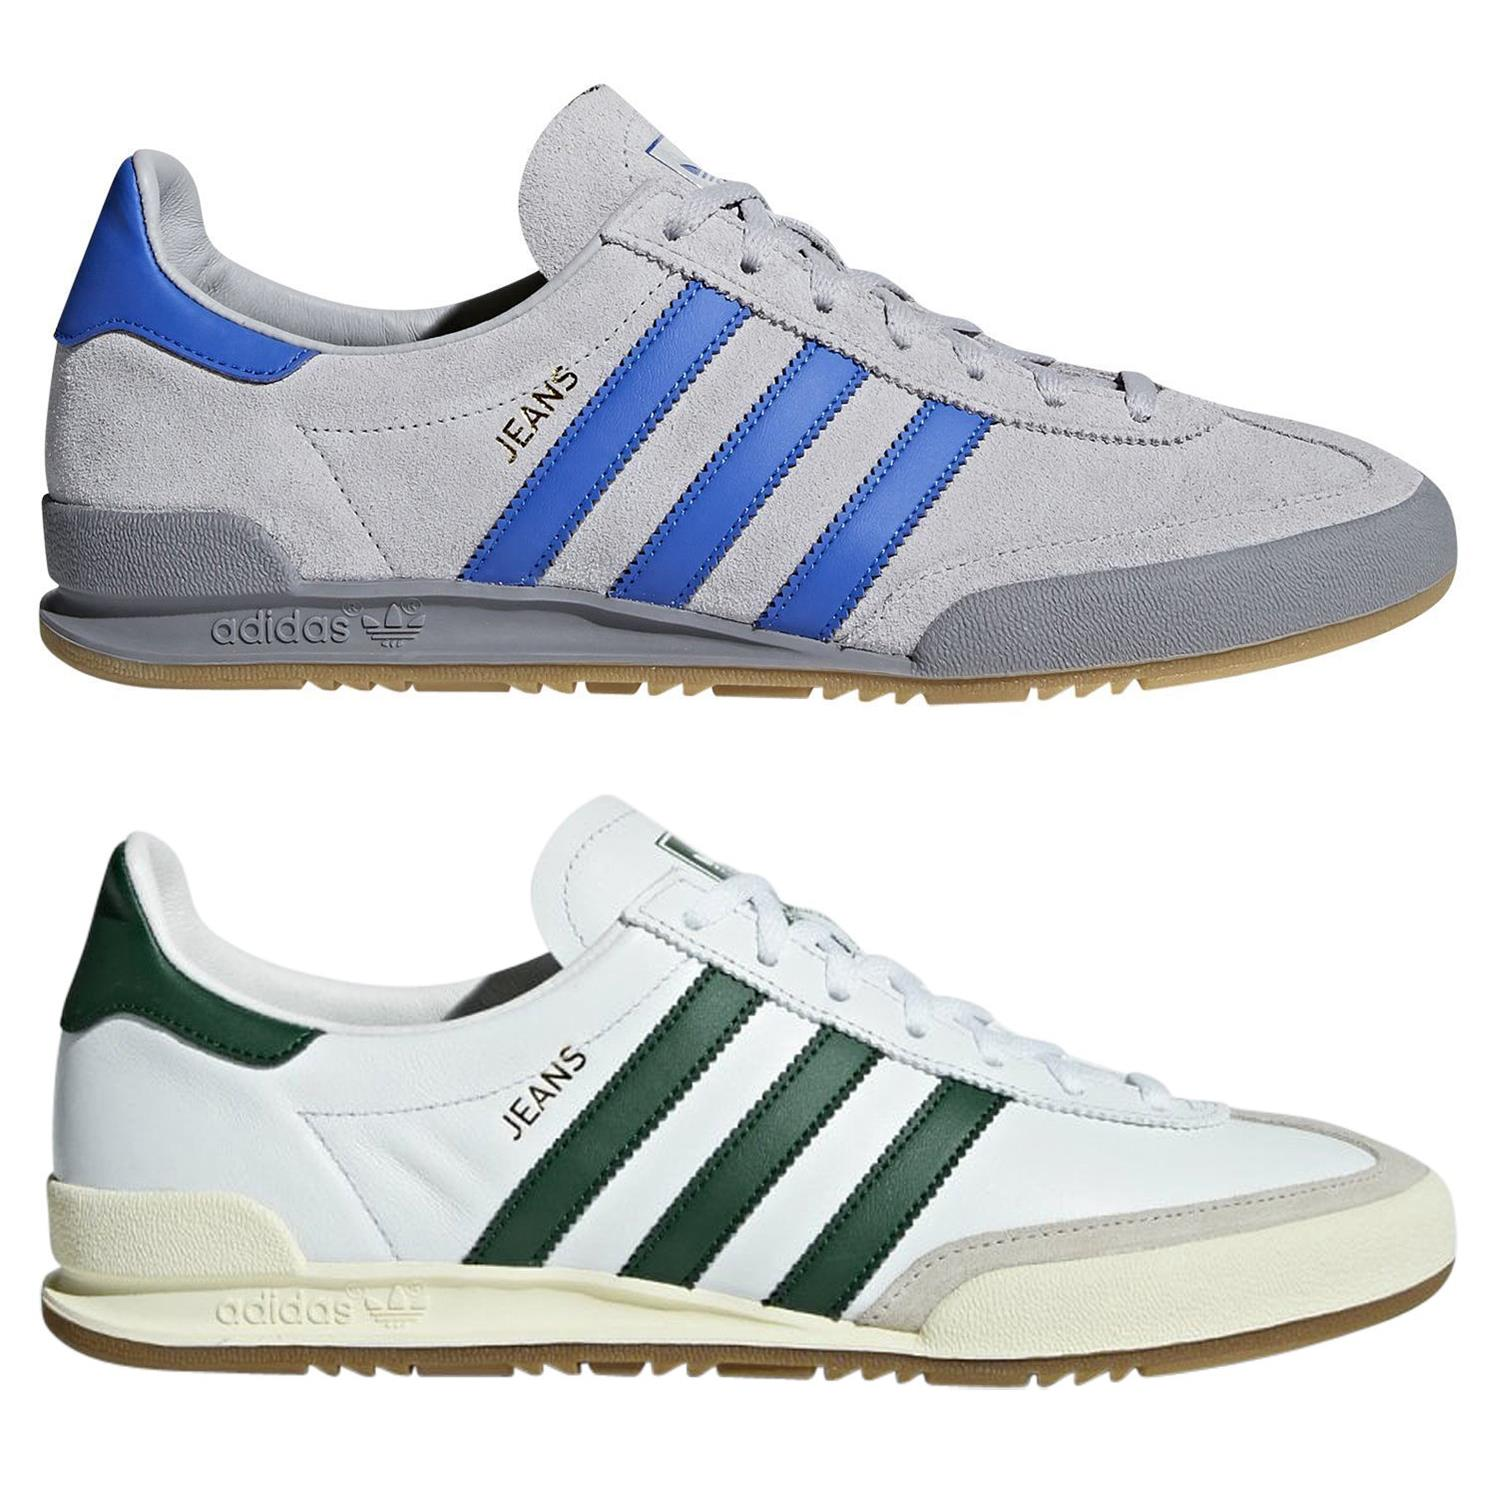 on sale on sale online for sale Adidas ORIGINALS Homme Jeans Baskets Baskets Chaussures Gris Blanc ...